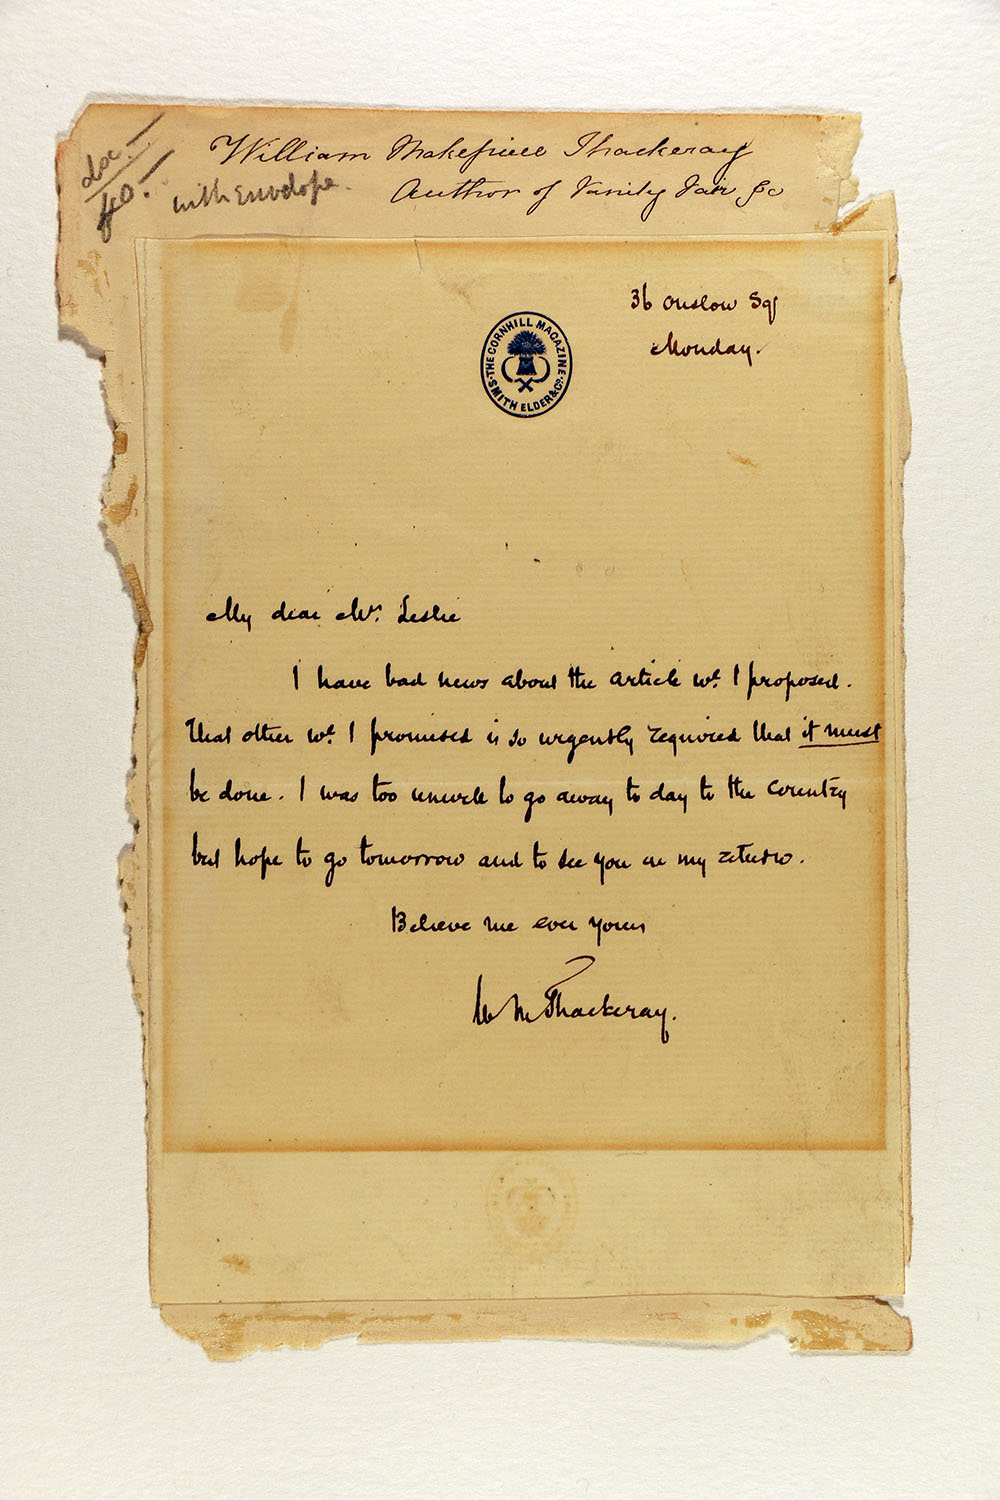 Letter from William Makepeace Thackeray to Harriet Leslie, February 27, 1860